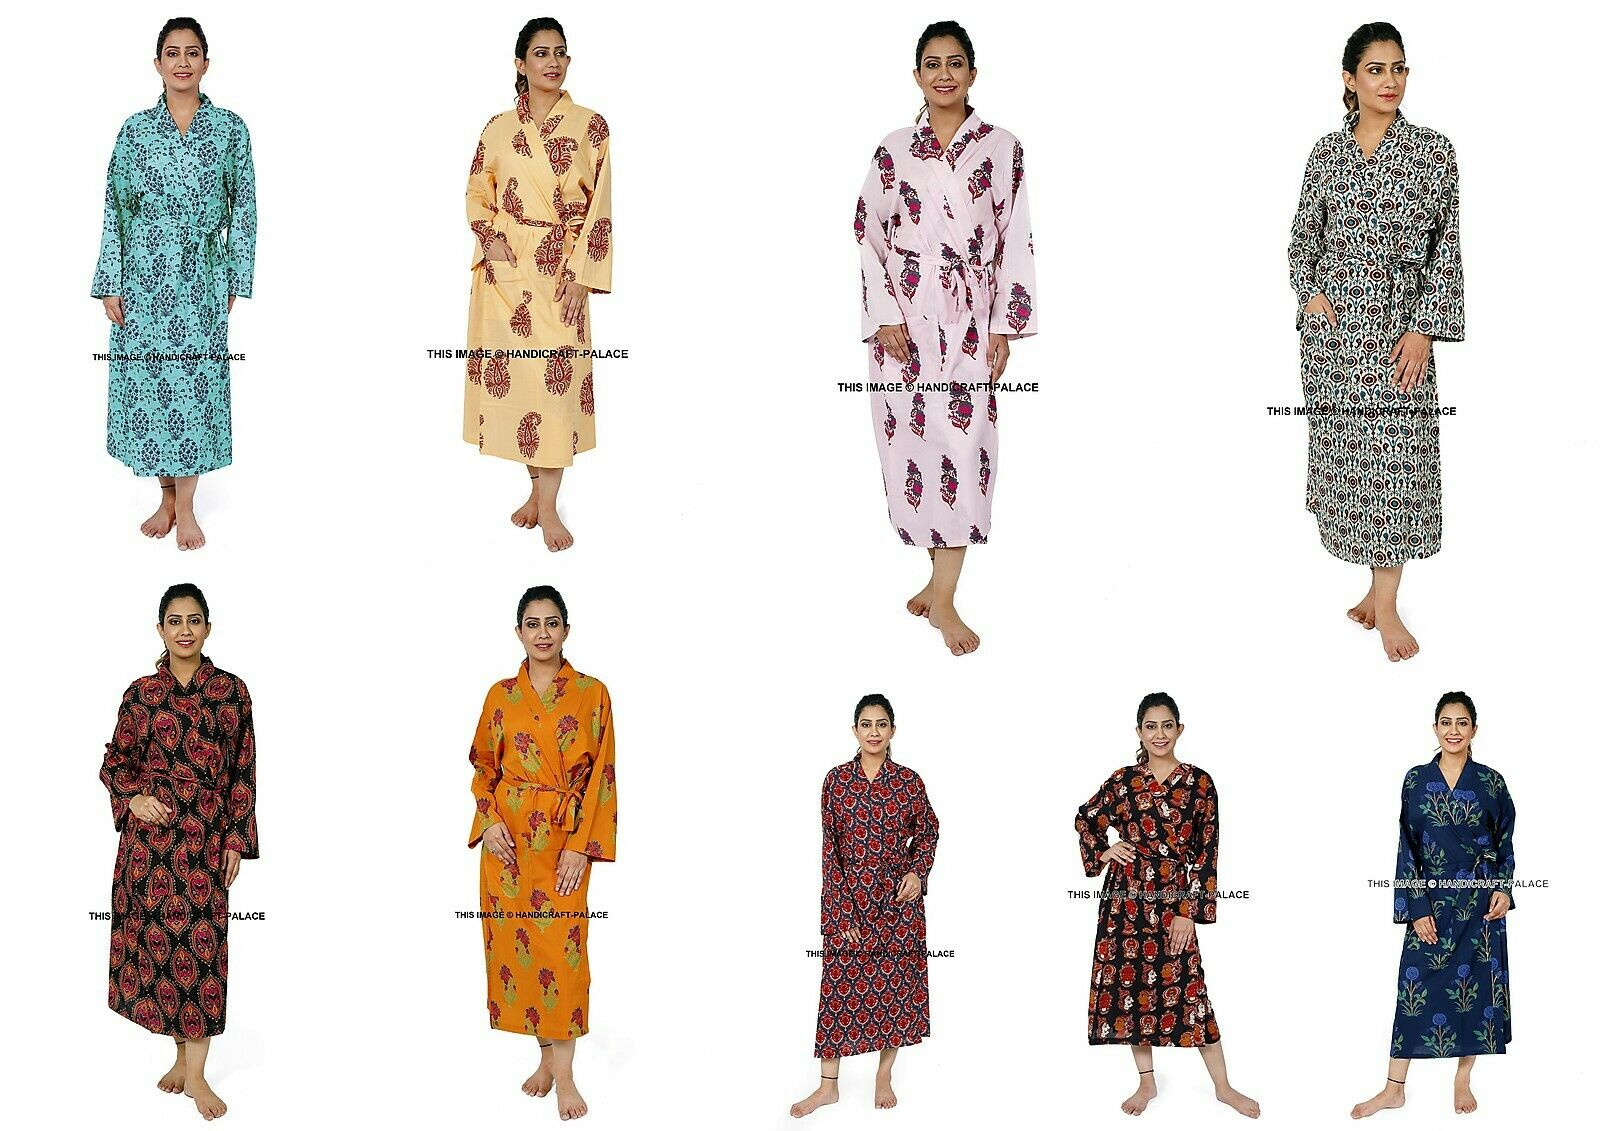 5 pcs Wholesale Lot Indian Cotton Kimono Bath Robe Floral Print Design Nightgown